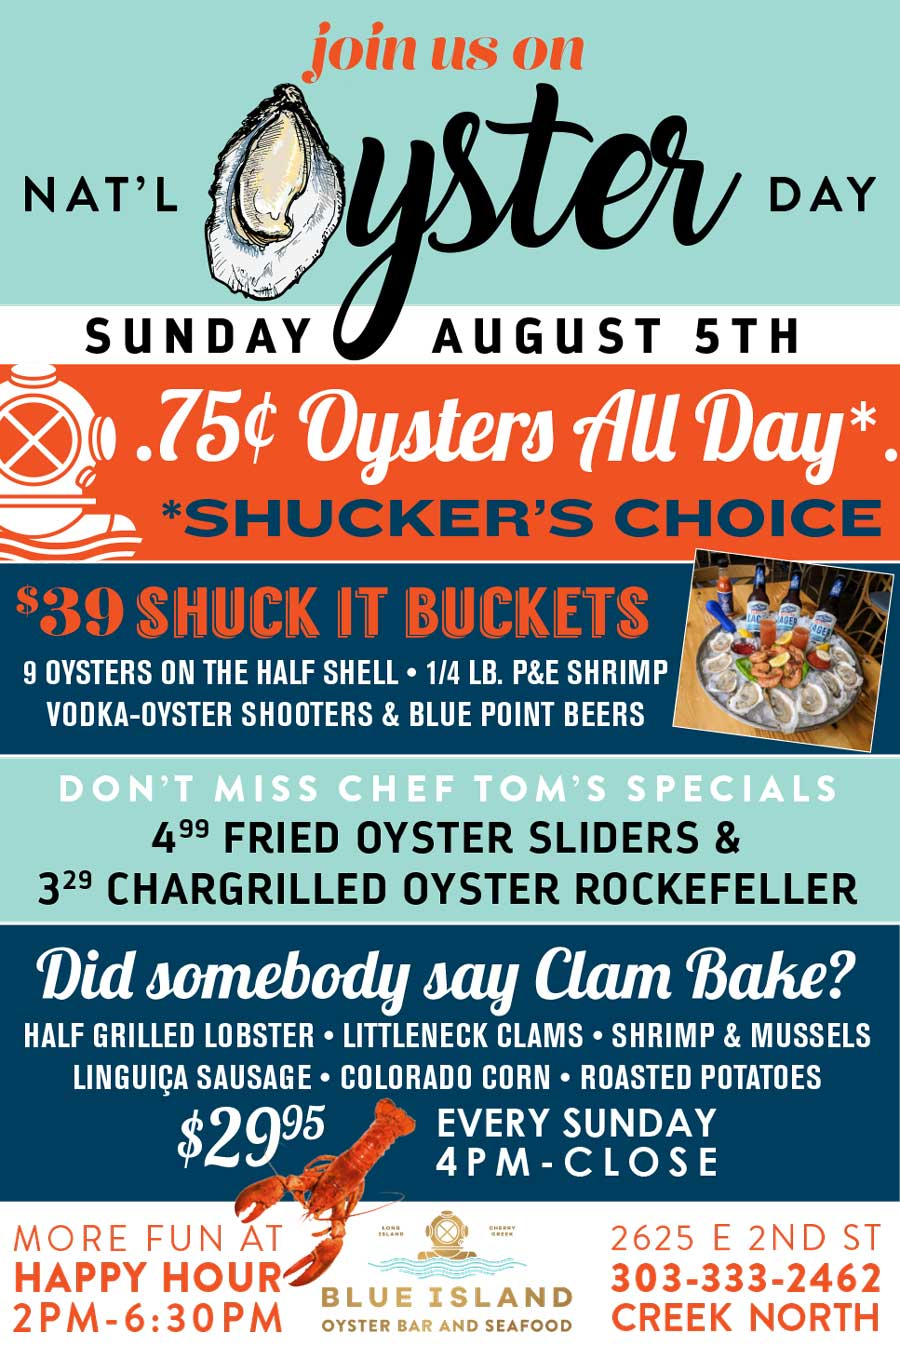 .75¢ Oysters for National Oyster Day - Shells down, Blue Island Oyster Bar has the best special around! Join us as we celebrate the beloved bi-valve on Sunday, August 5th. Select oysters will be .75¢ ALL DAY - whatever our shucker gets his hand on! Plus check out the amazing specials by Chef Tom including his Clam Bake that starts at 4pm. Reserve your seat!